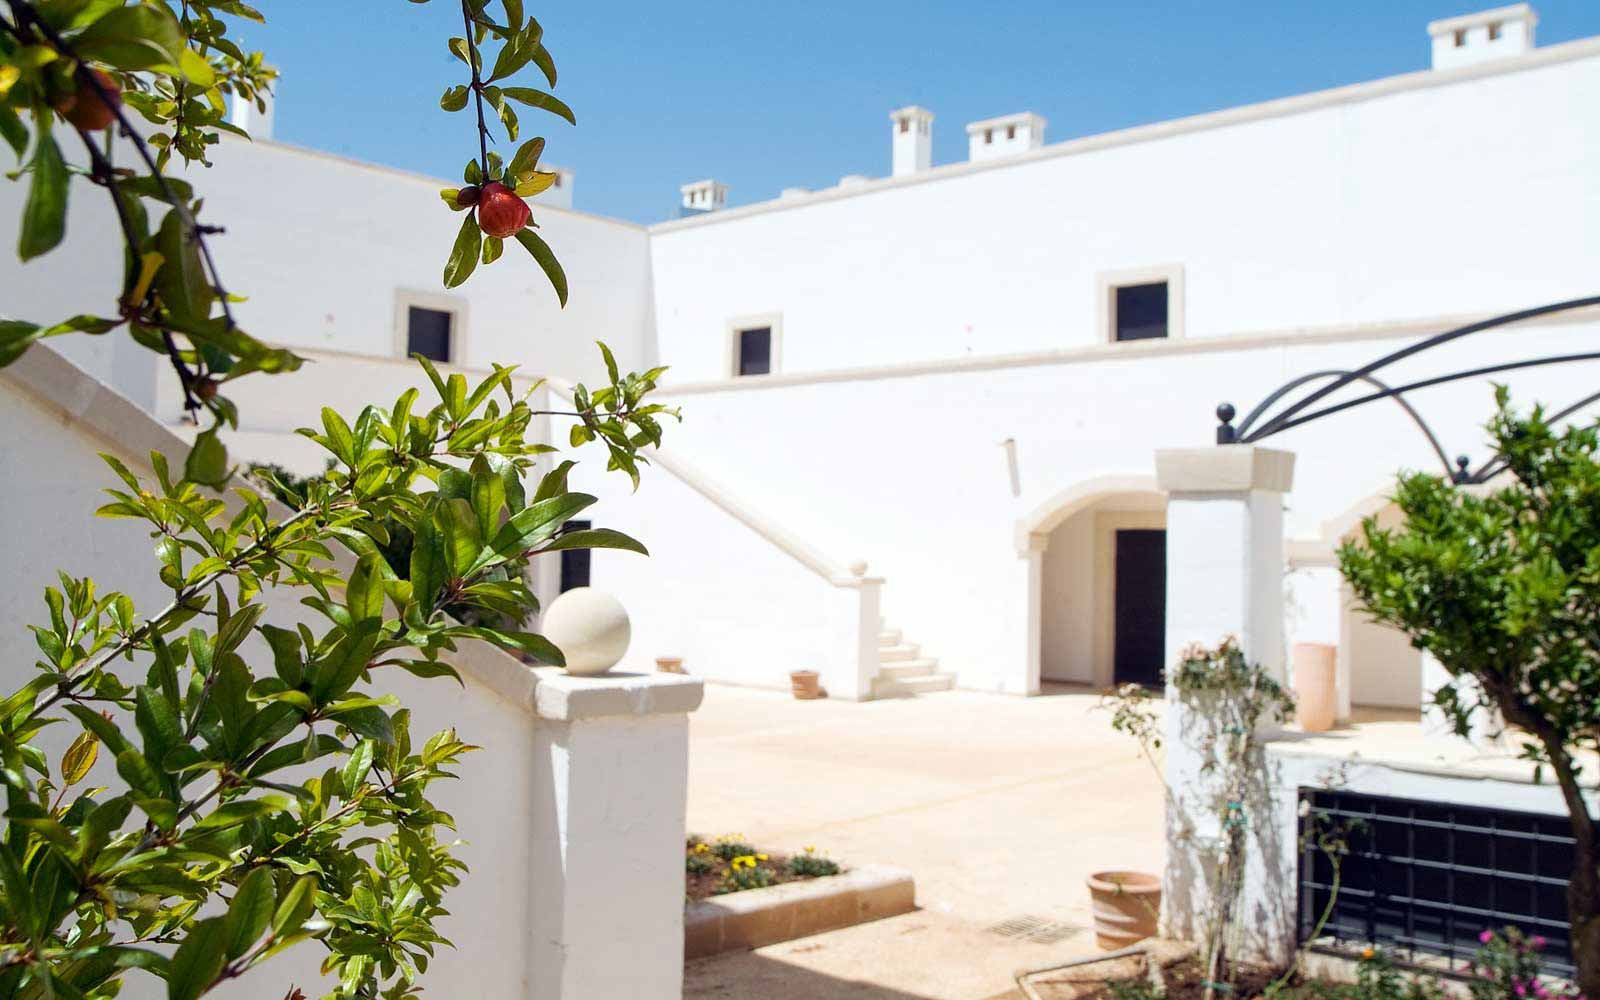 Apulian Masseria style at Borgobianco Resort & Spa